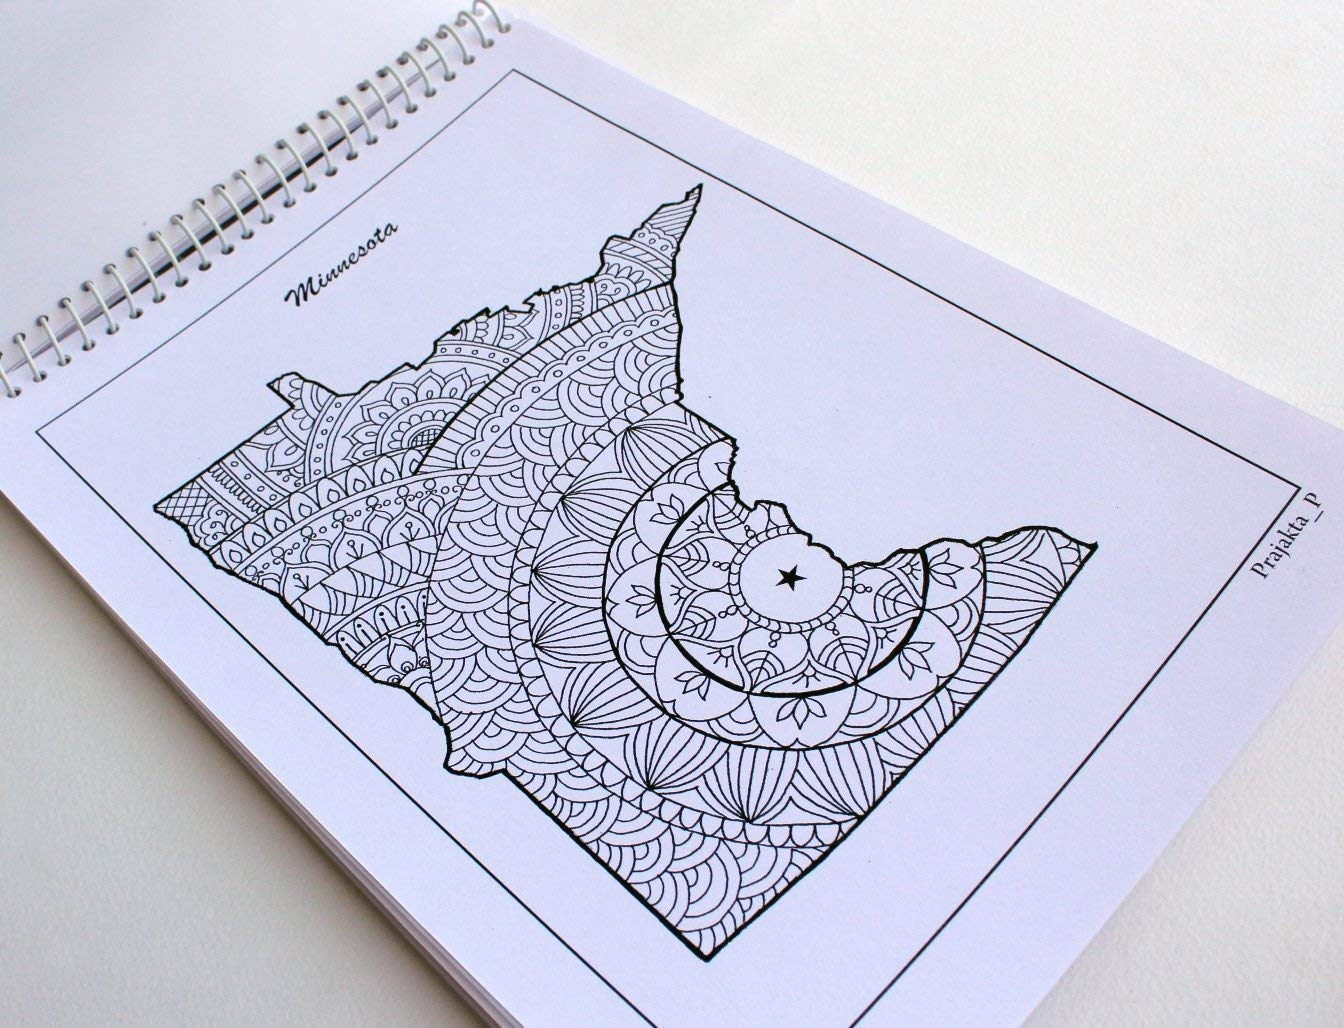 spiral bound Patriotic coloring gifts USA state maps adult coloring book stress relieving patterns for all Volume 08